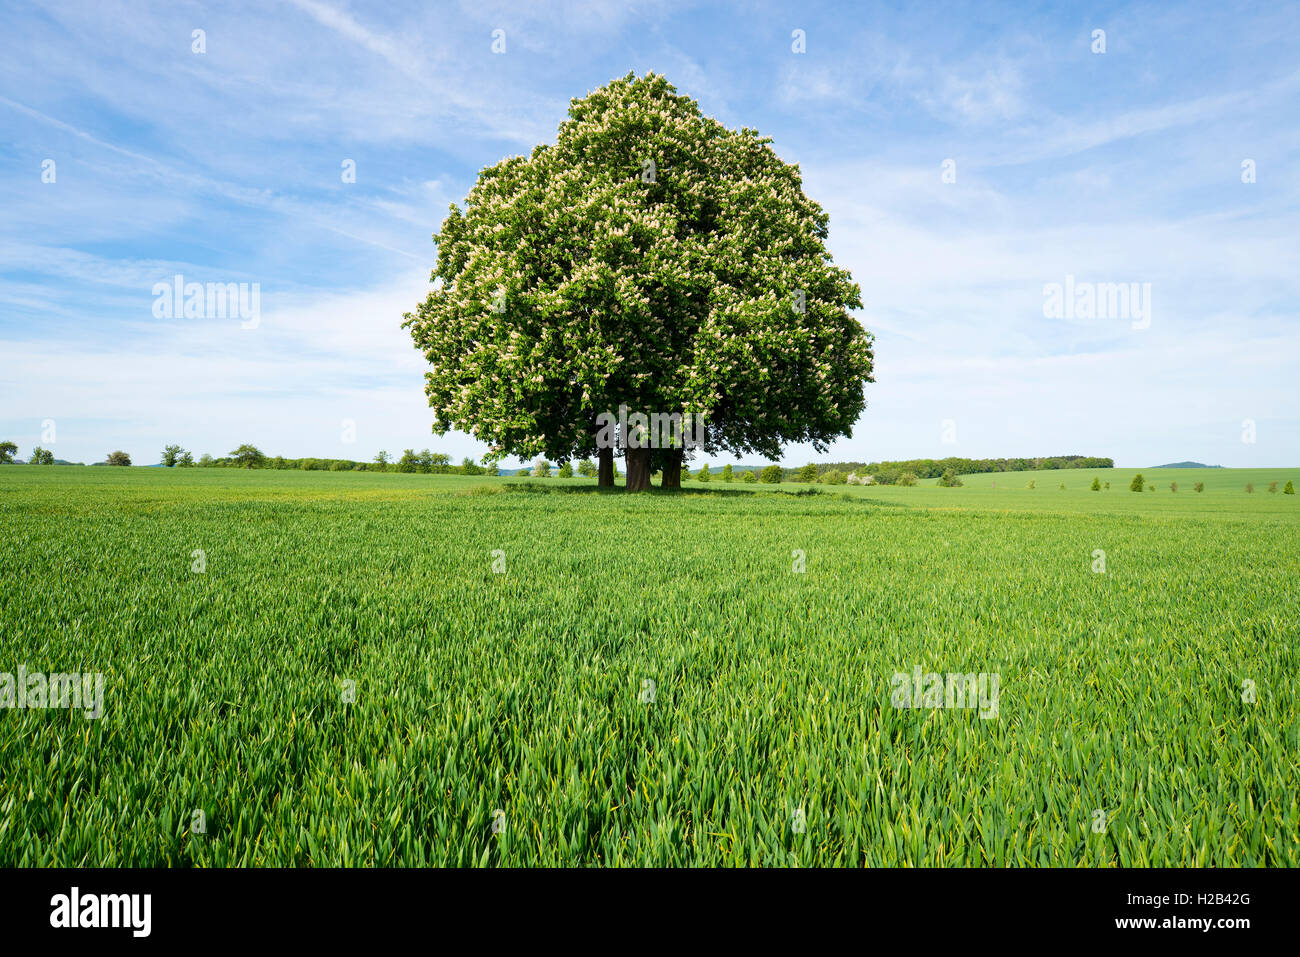 Horse-chestnut or conker tree (Aesculus hippocastanum) flowering, group of trees in grain field, Thuringia, Germany Stock Photo